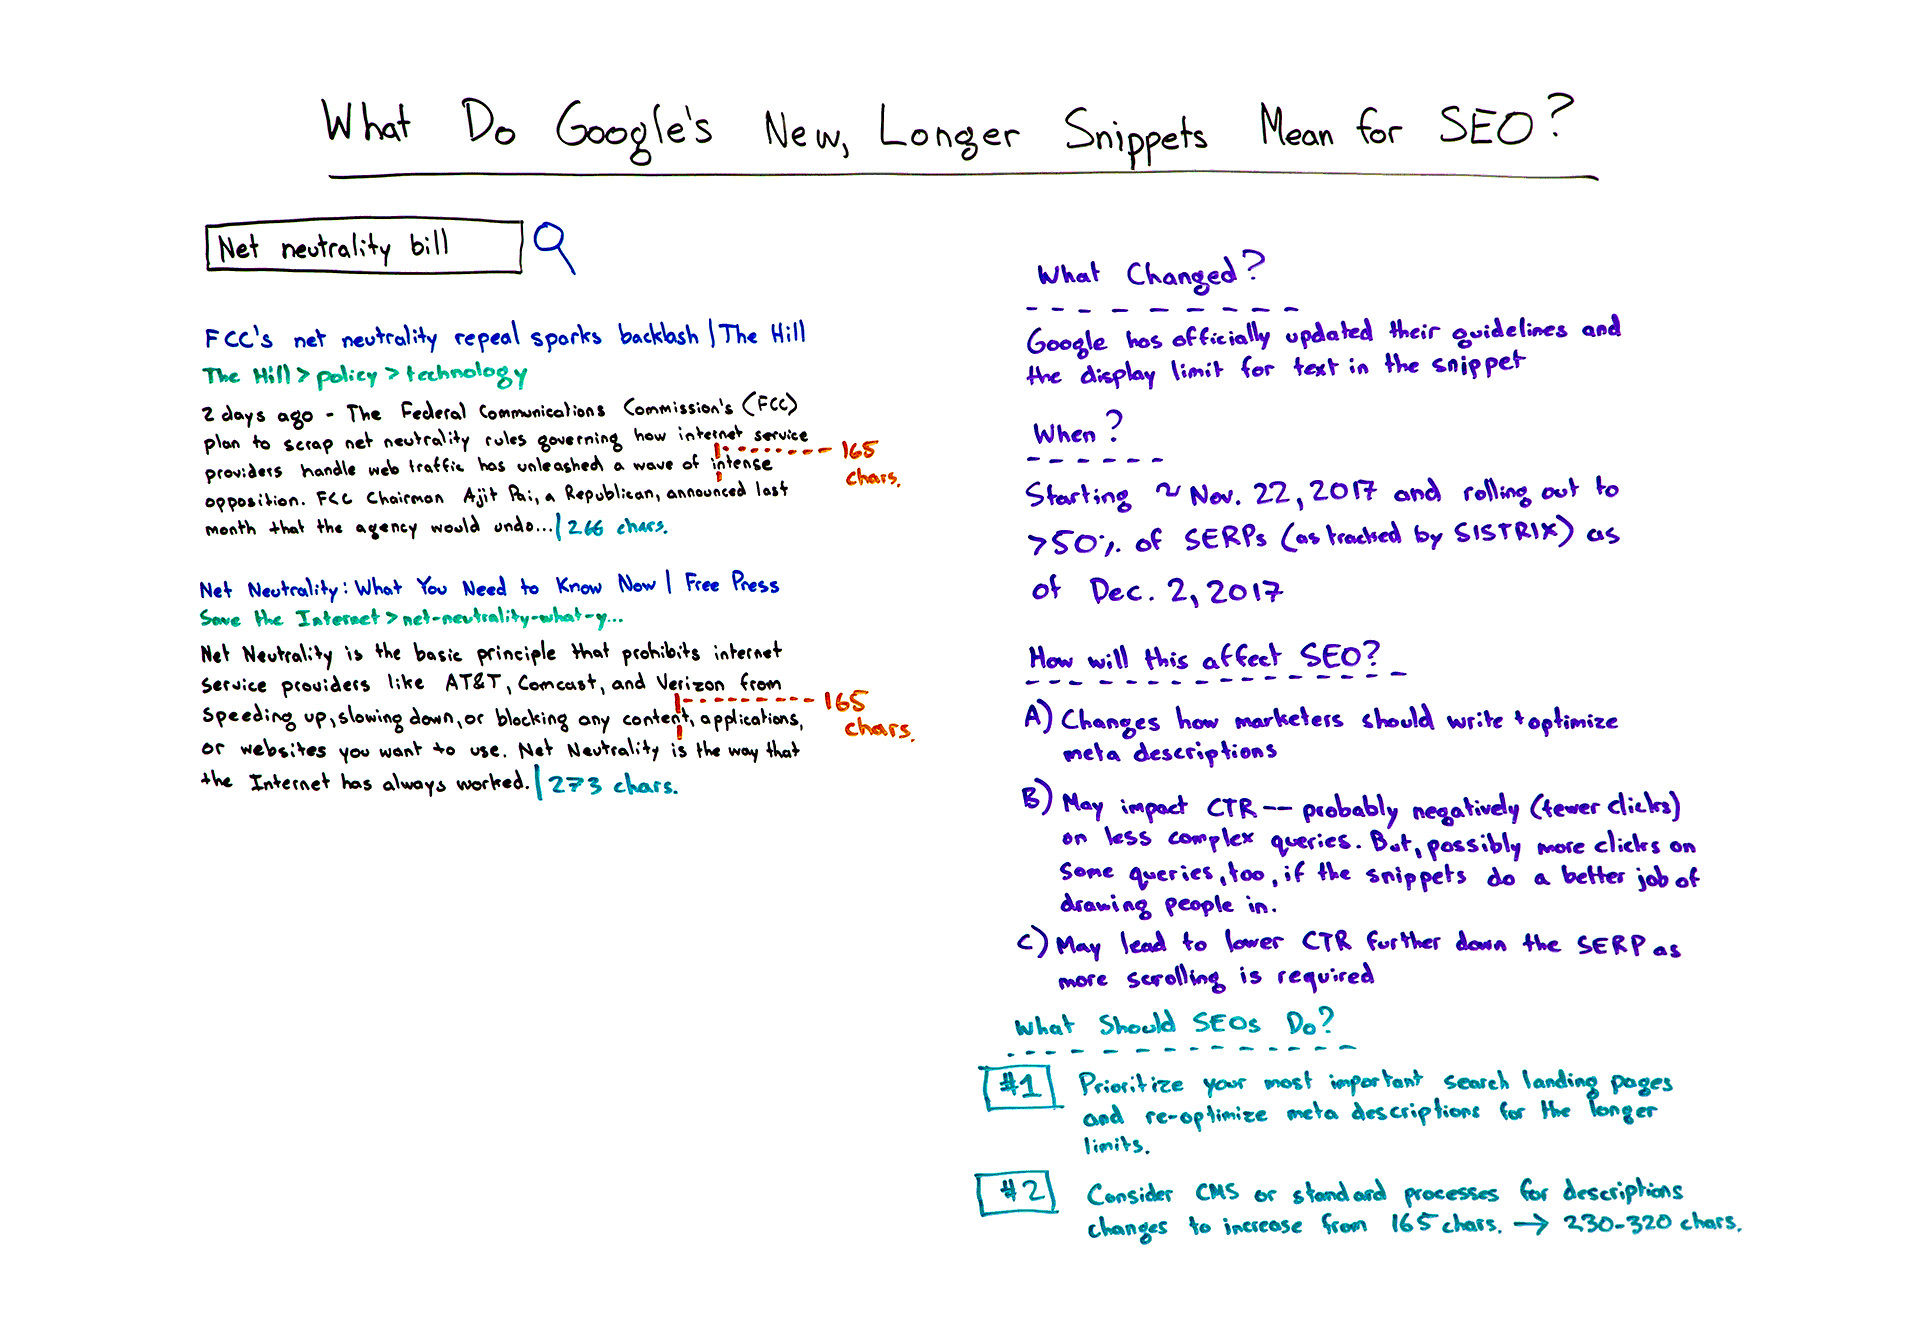 What do Google's now, longer snippets mean for SEO?